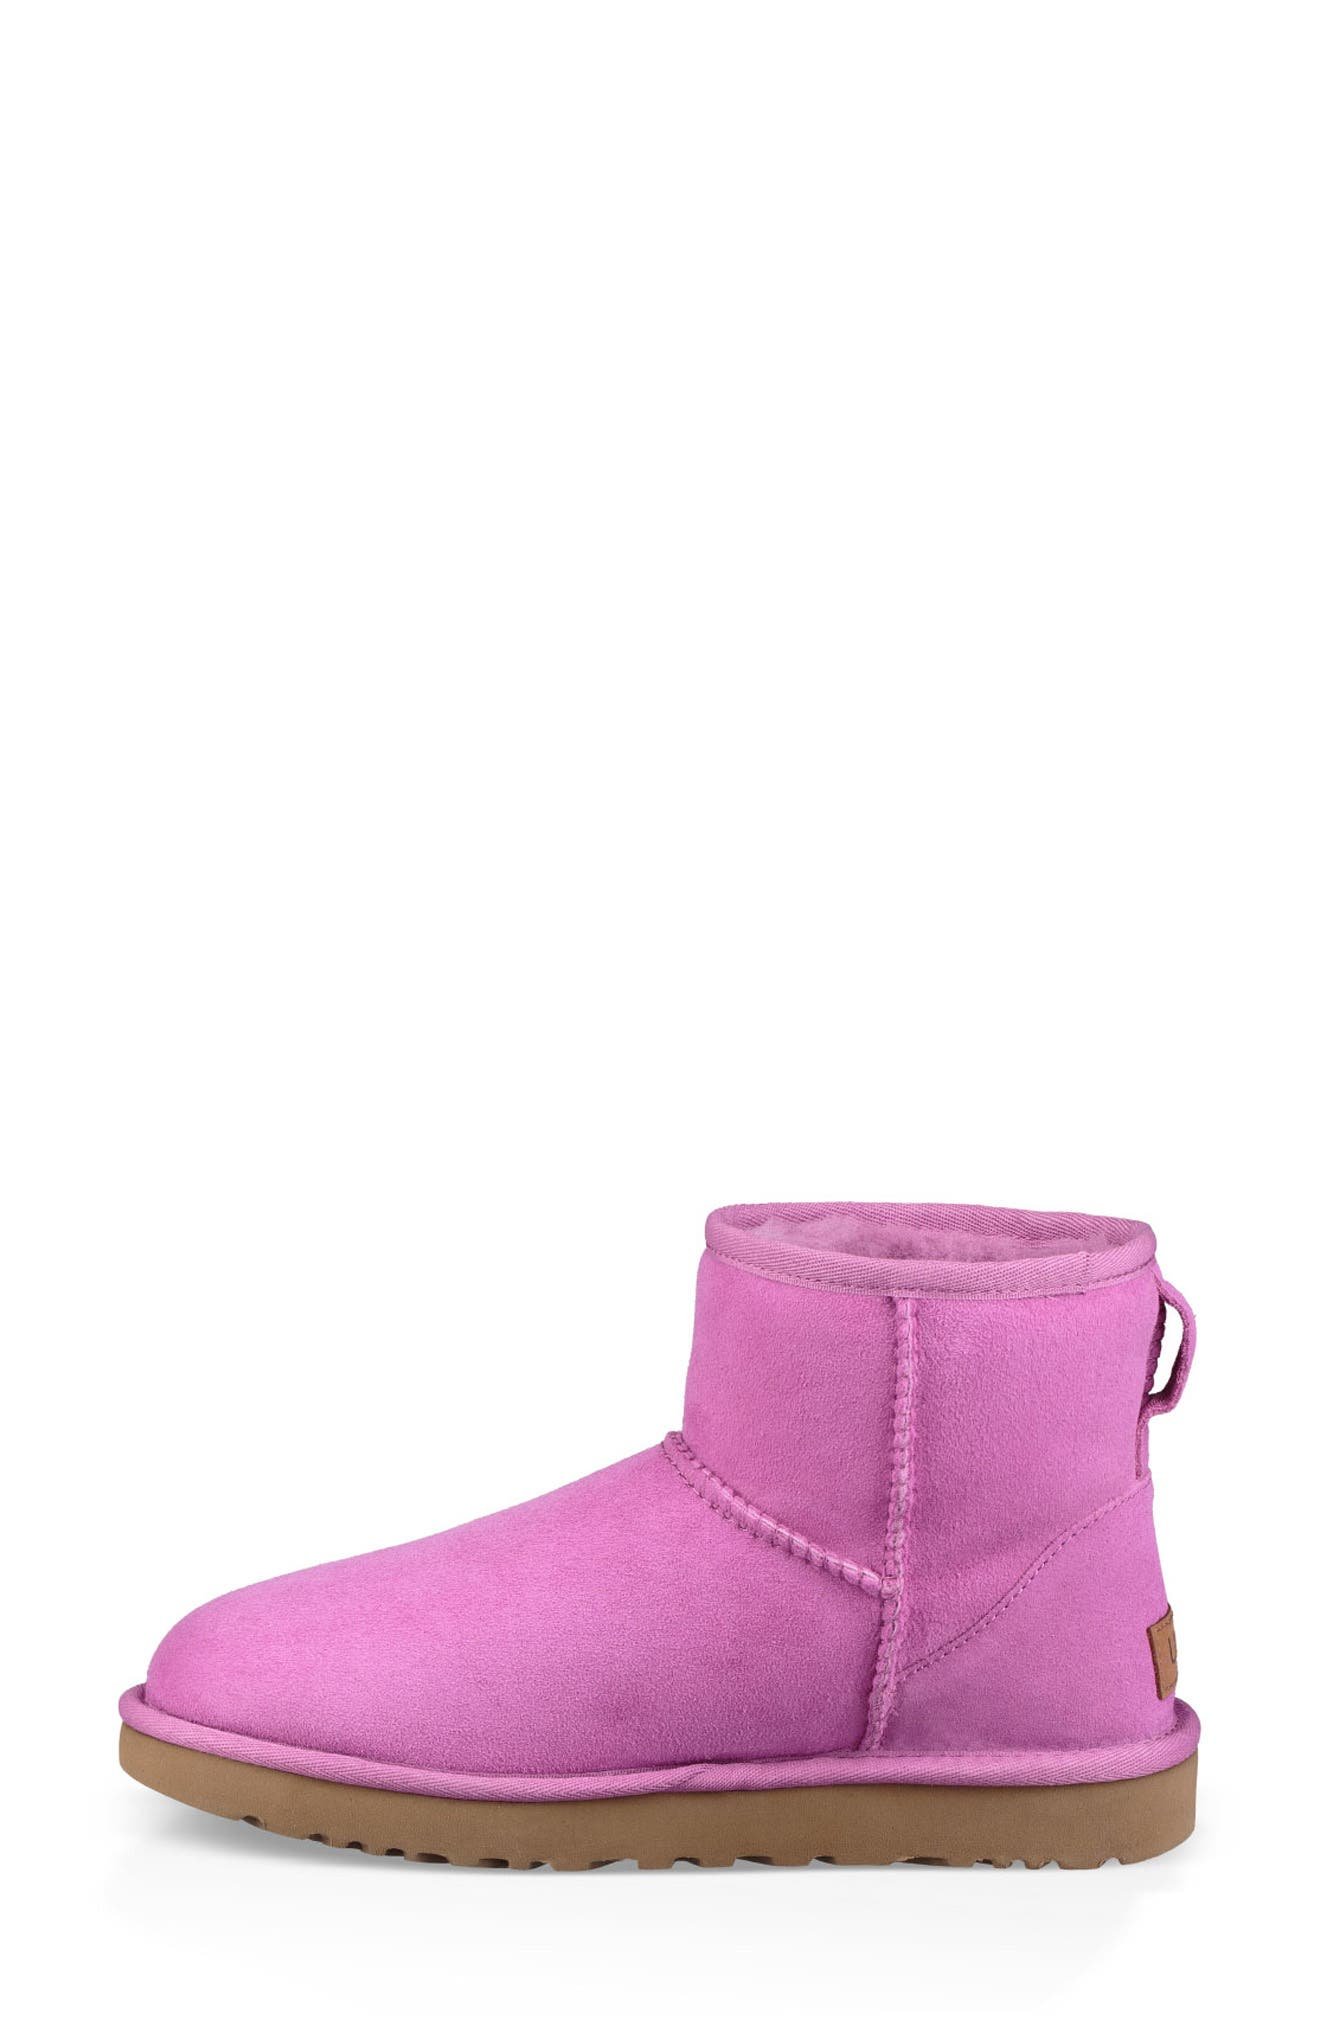 'Classic Mini II' Genuine Shearling Lined Boot,                             Alternate thumbnail 6, color,                             BODACIOUS SUEDE